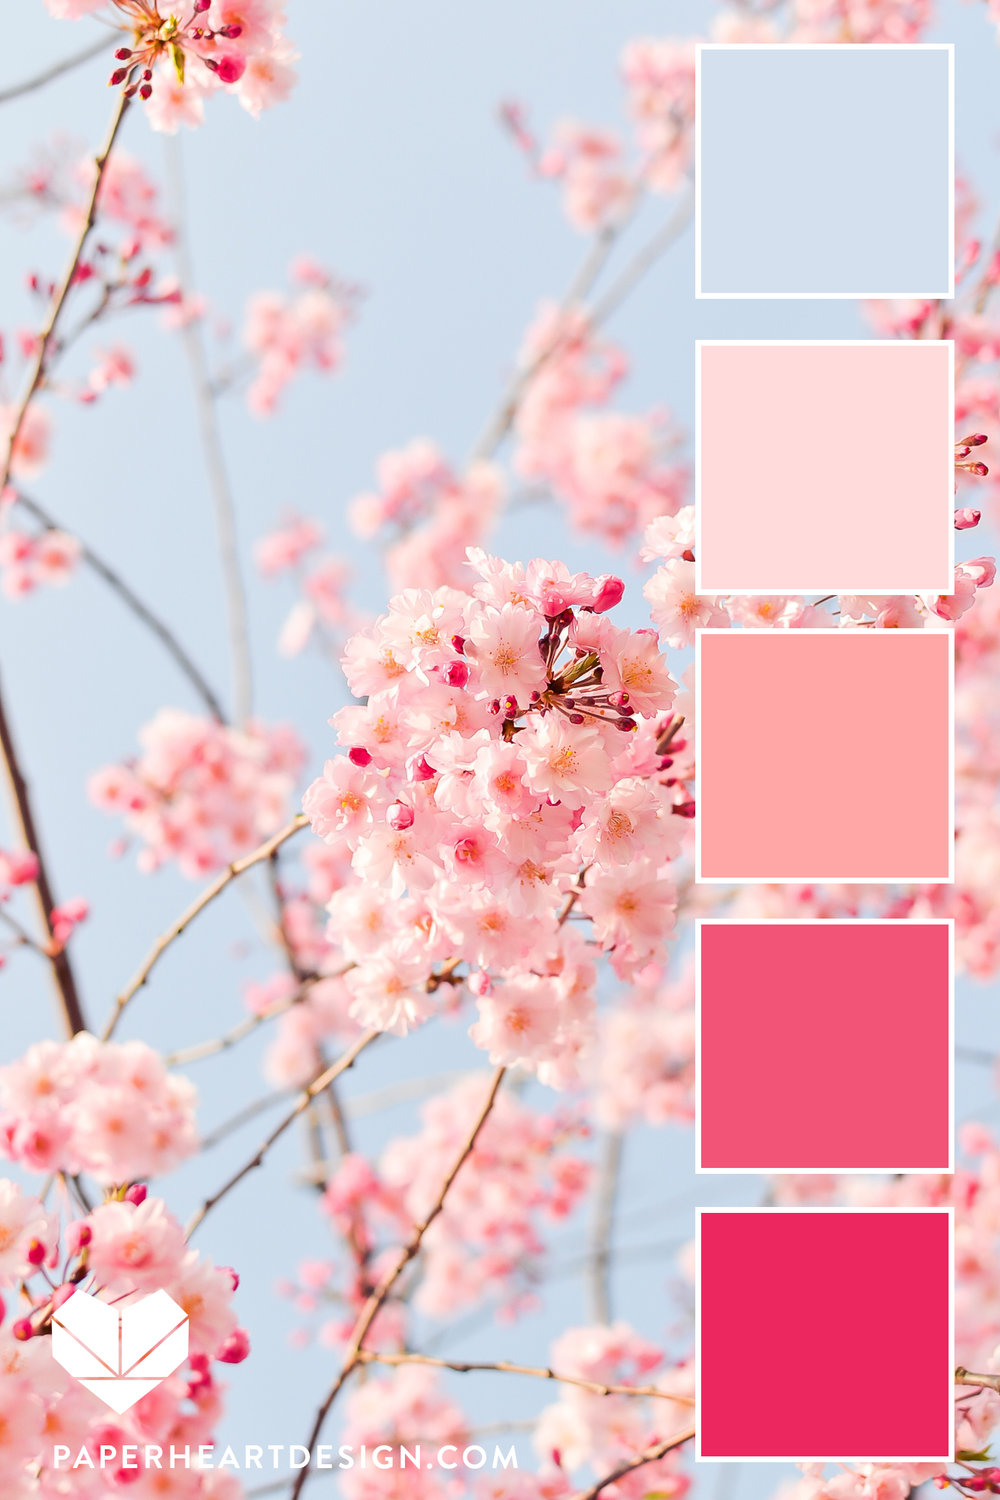 Pink and lit blue Cherry Blossoms PHOTO.jpg